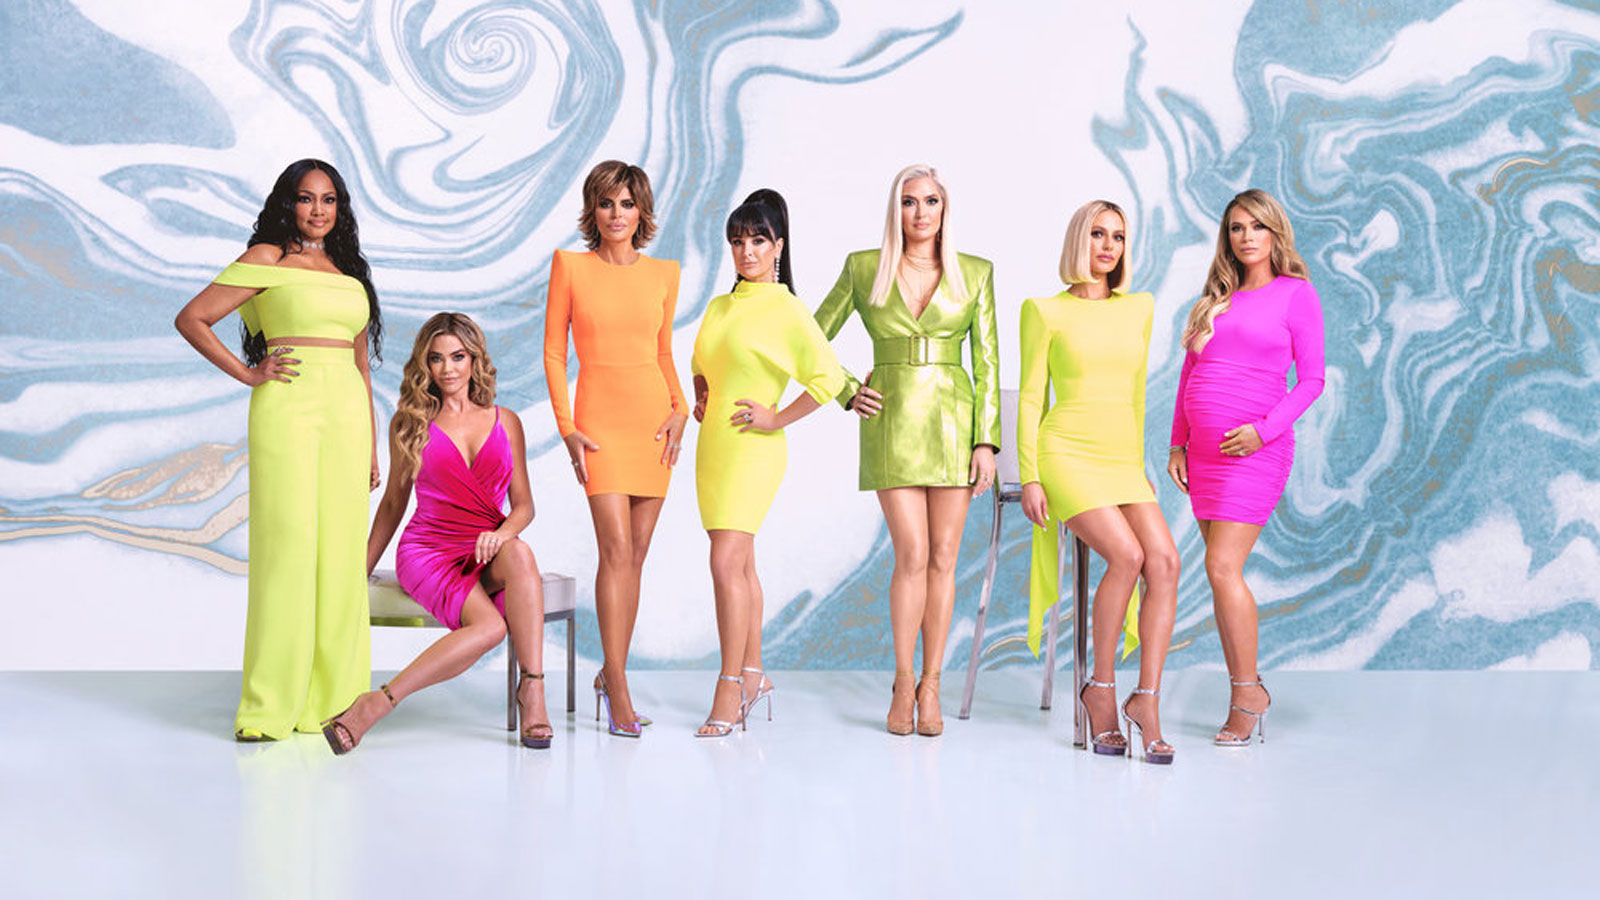 The Real Housewives of Beverly Hills Season 10 Episode 3